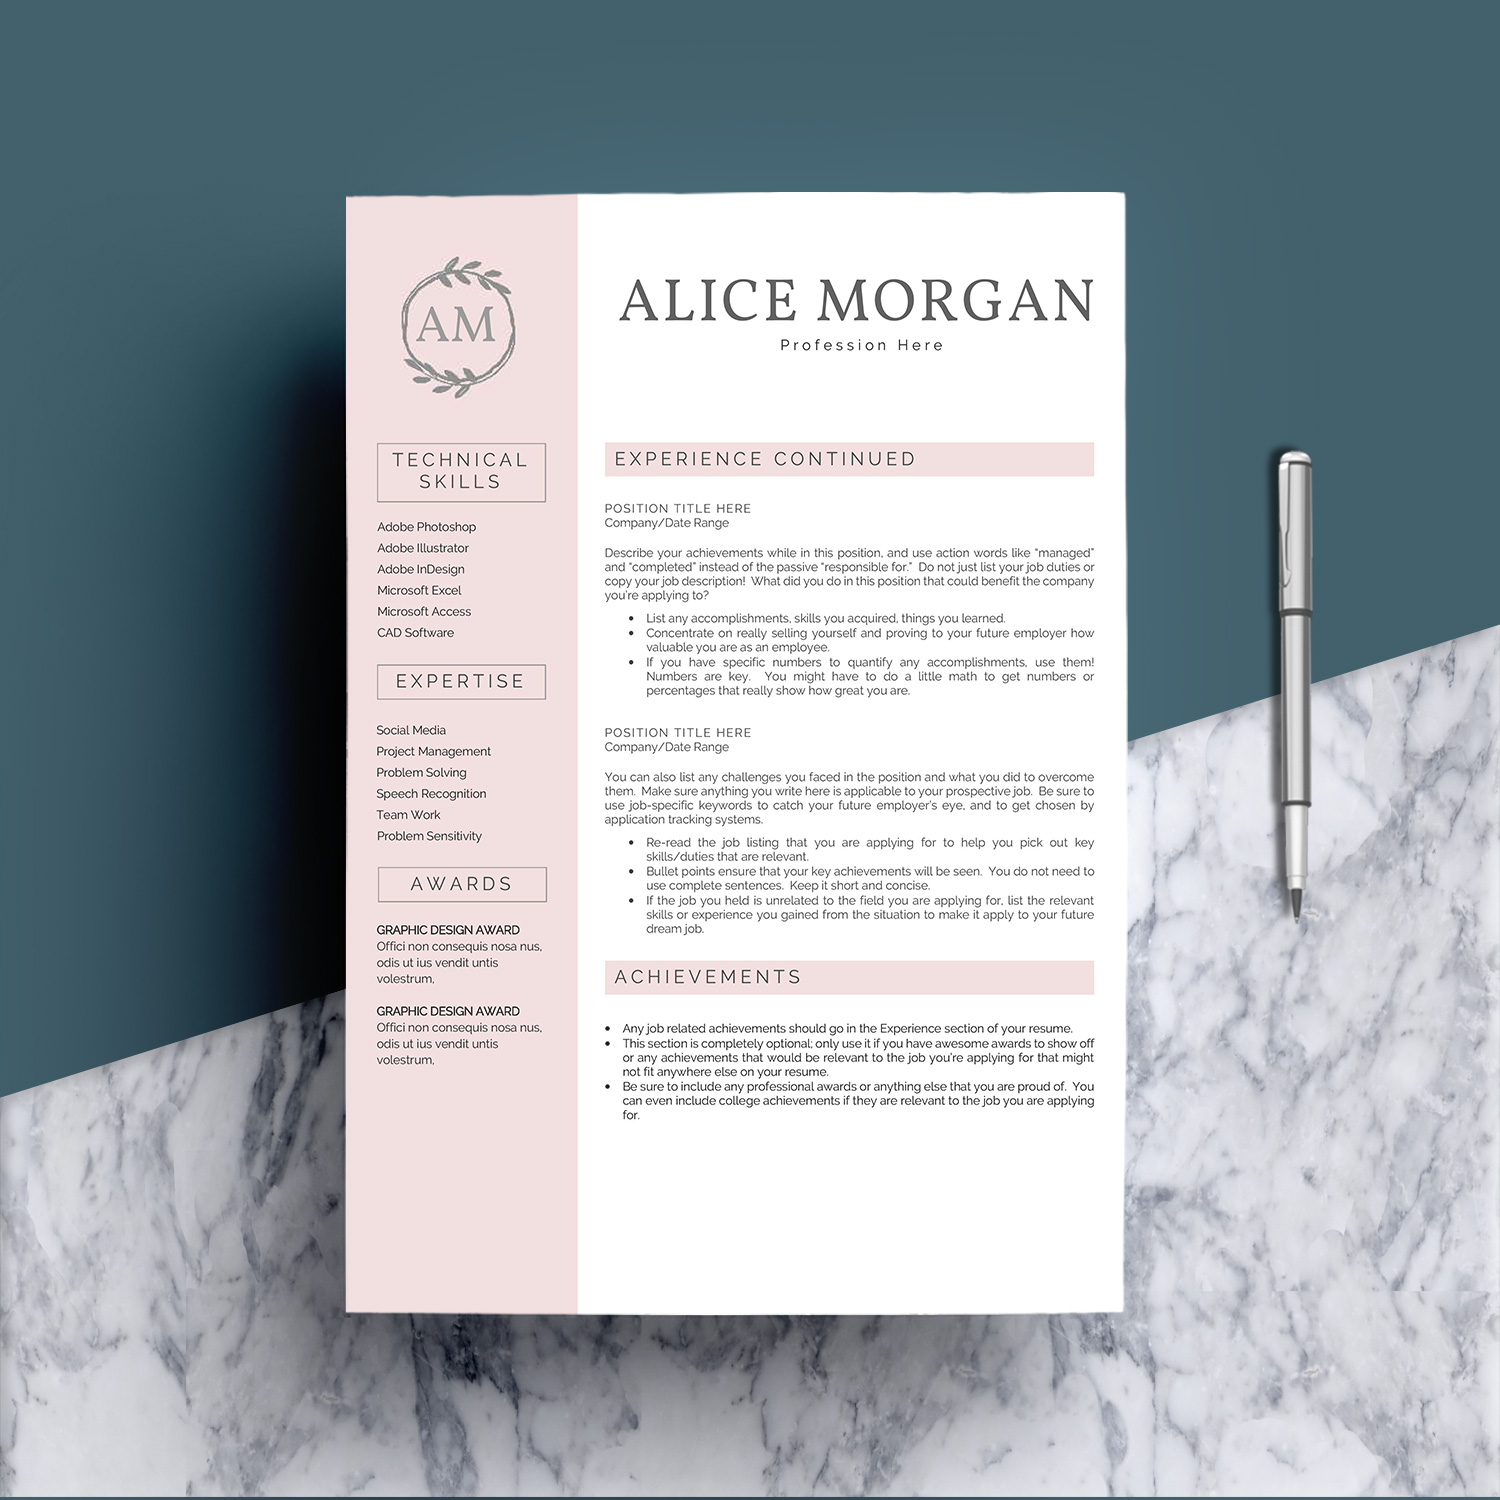 Professional Creative Resume Template - Alice Morgan example image 3